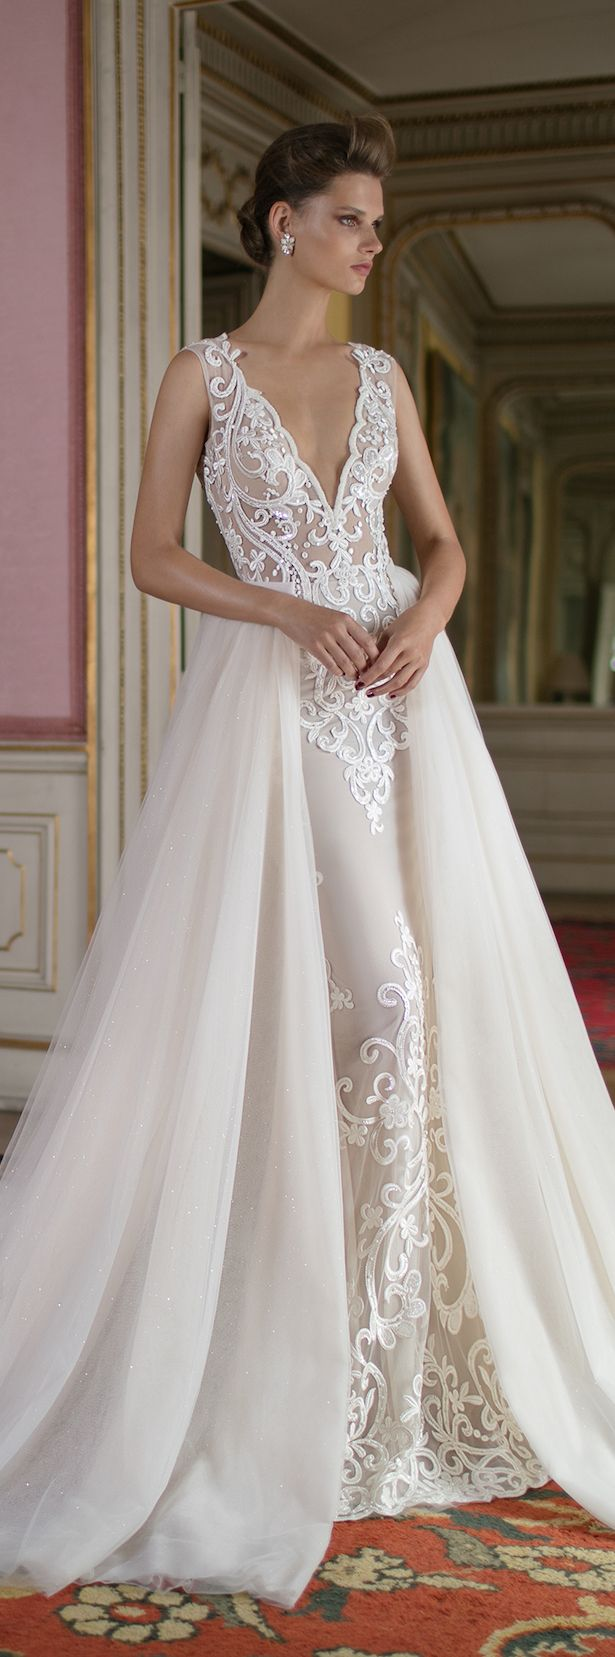 Wedding Dresses With Detachable Skirts 021 - Wedding Dresses With Detachable Skirts